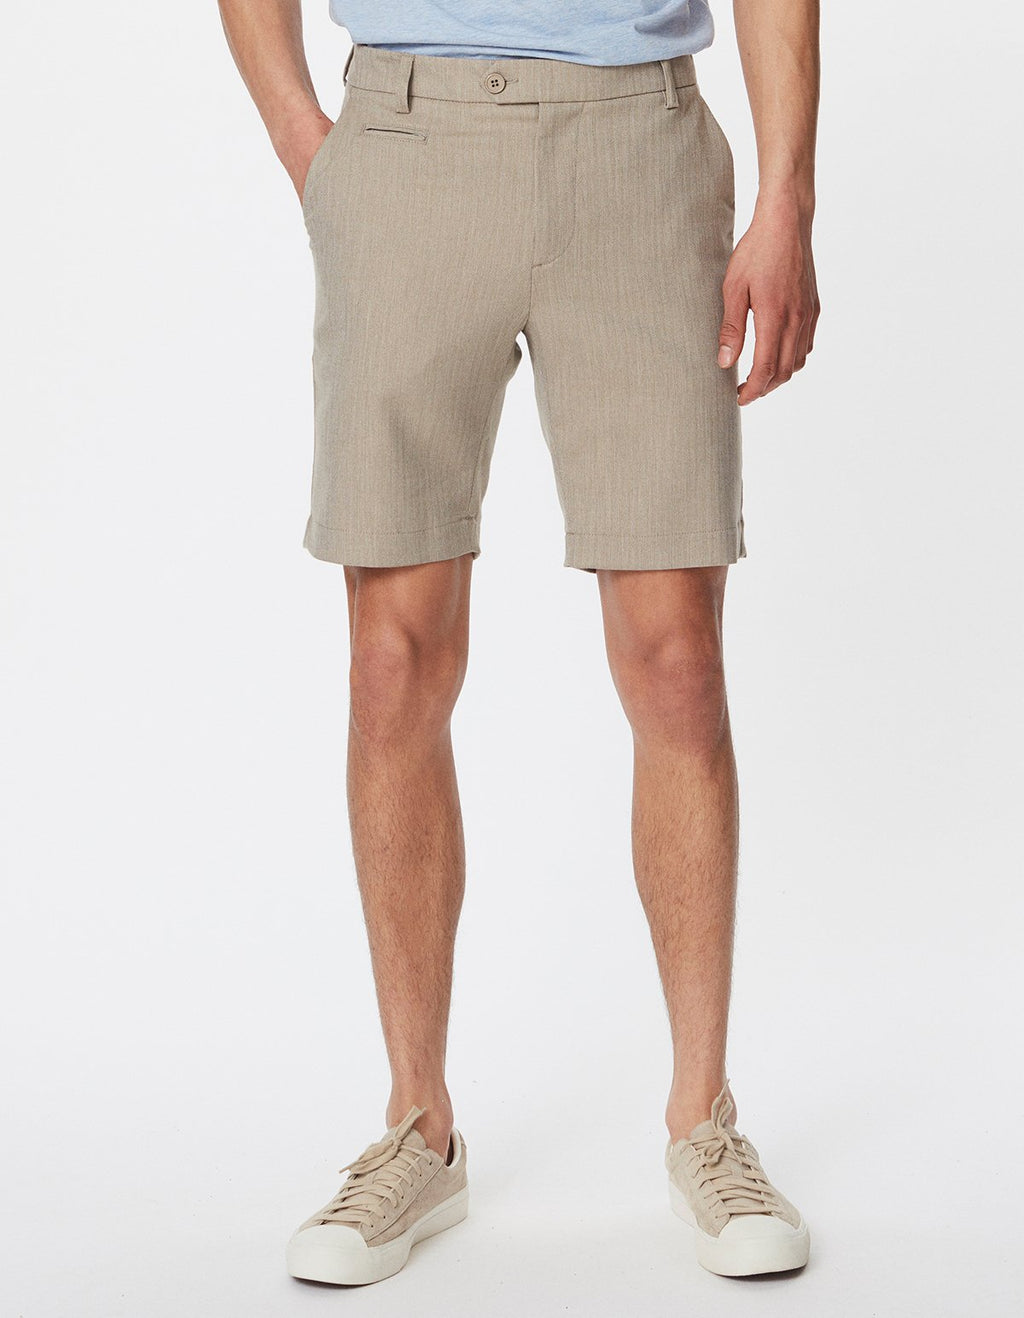 Les Deux Como Light Herringbone Shorts Light Brown Insence/Off White - Mojo Independent Store